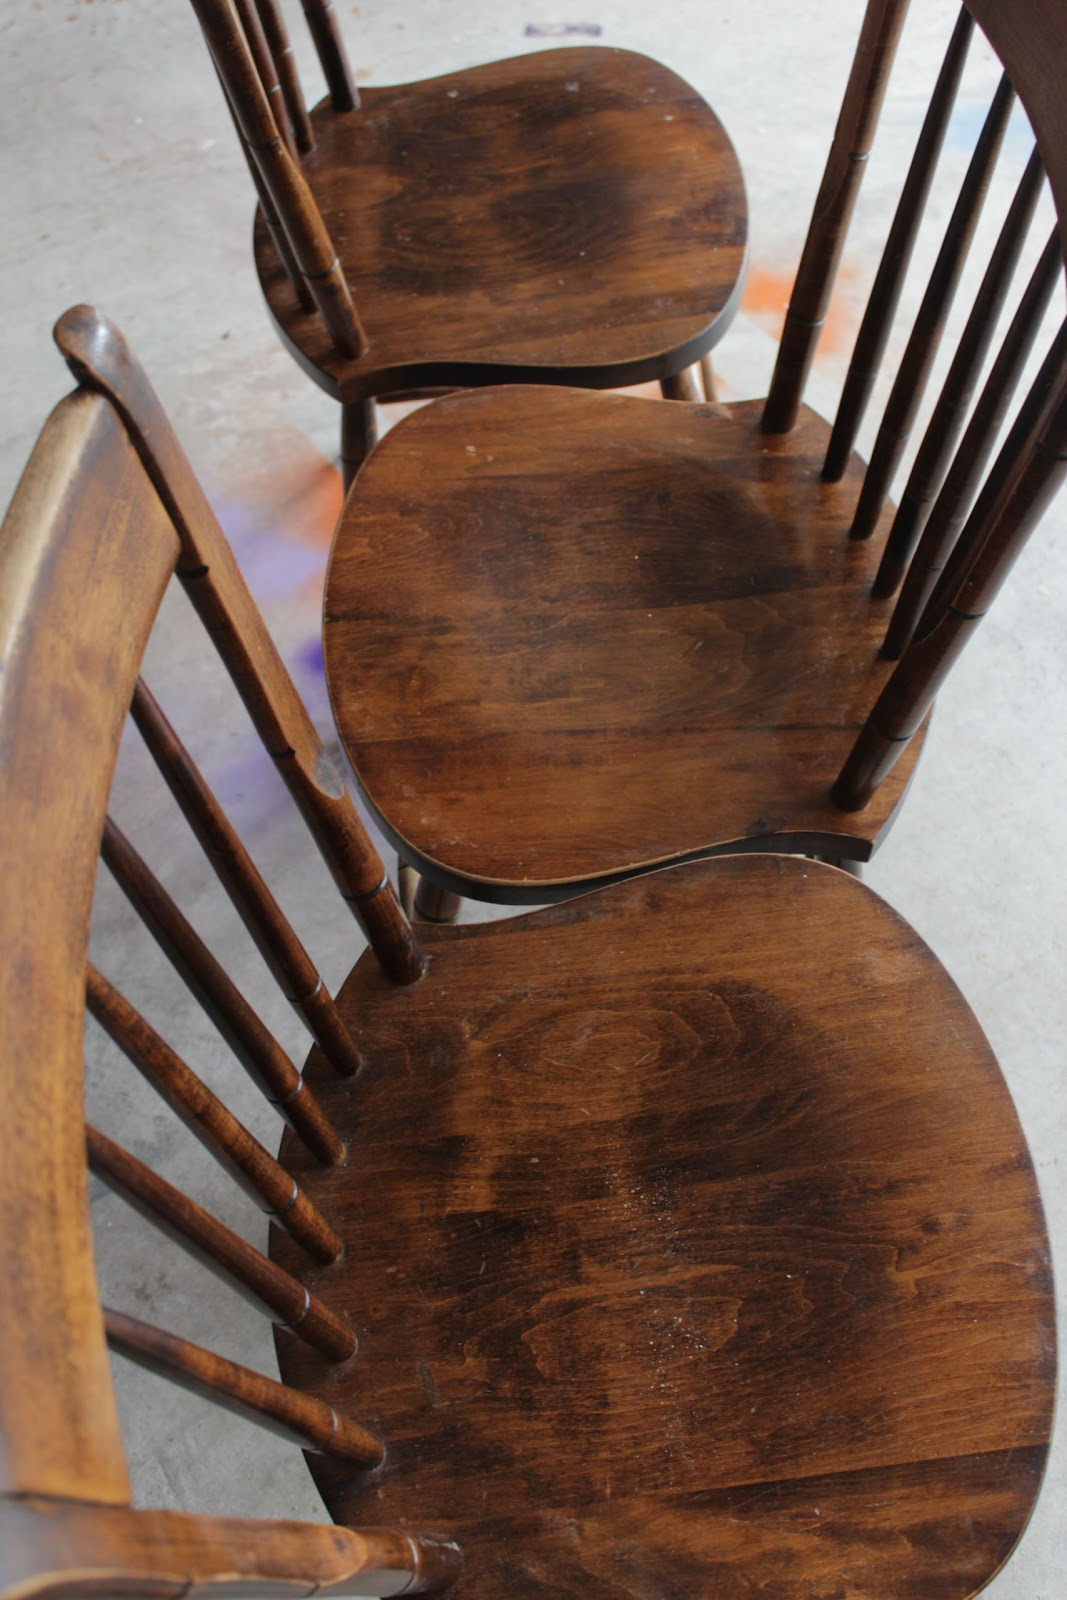 how to fix a squeaky wooden chair